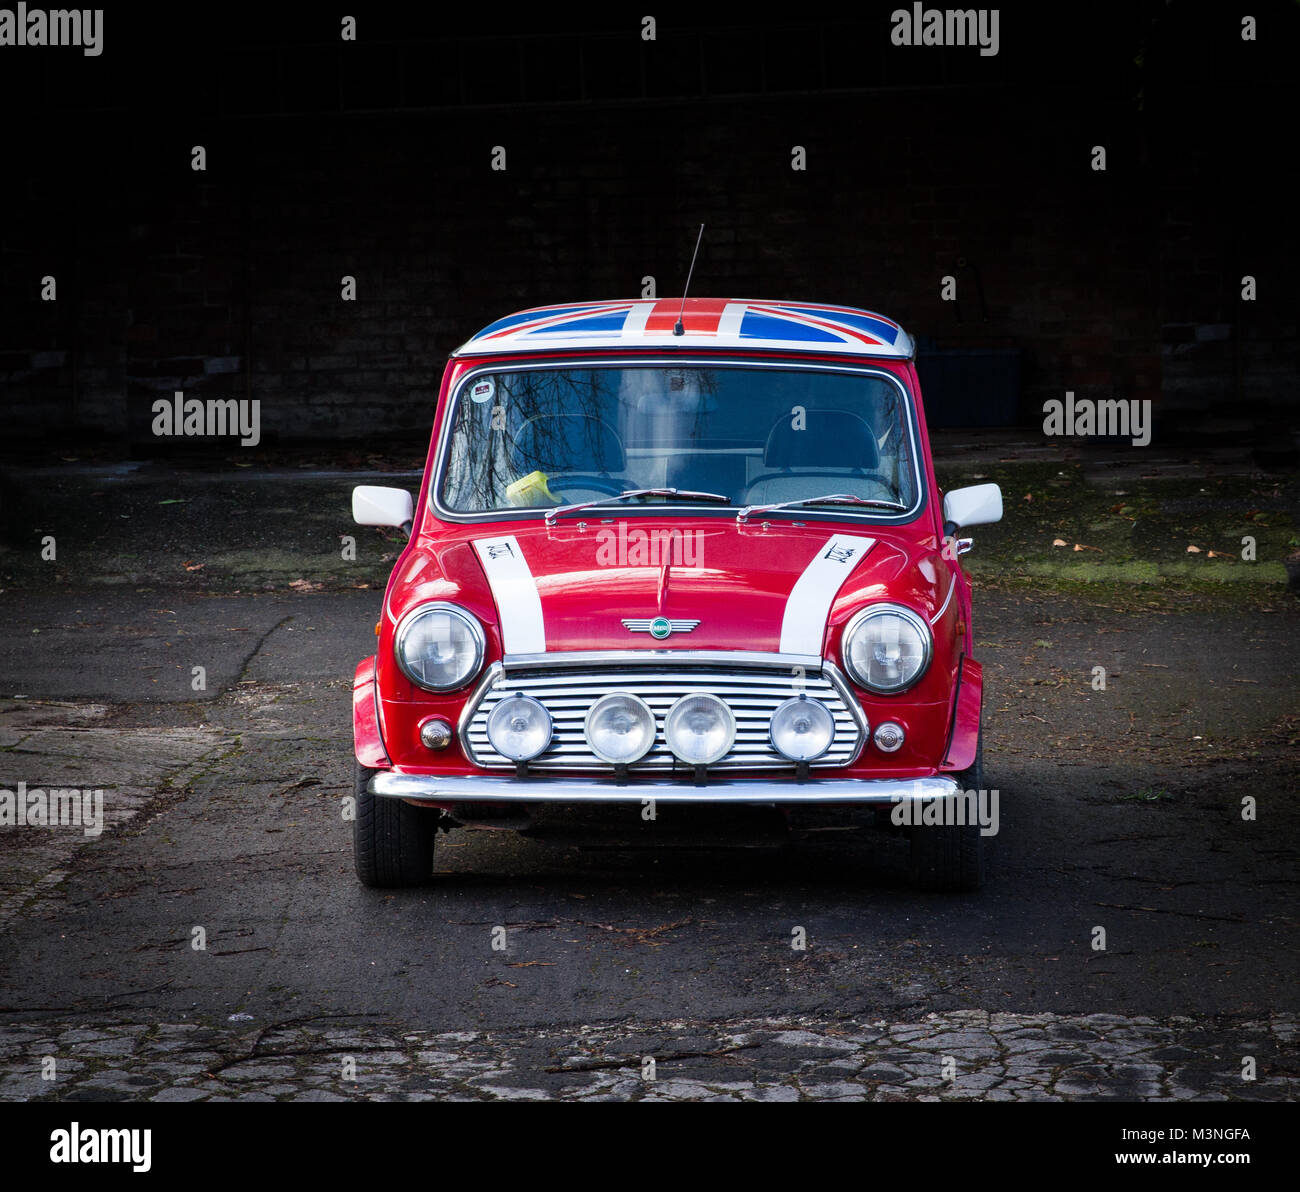 classic mini car 60s stock photos classic mini car 60s. Black Bedroom Furniture Sets. Home Design Ideas